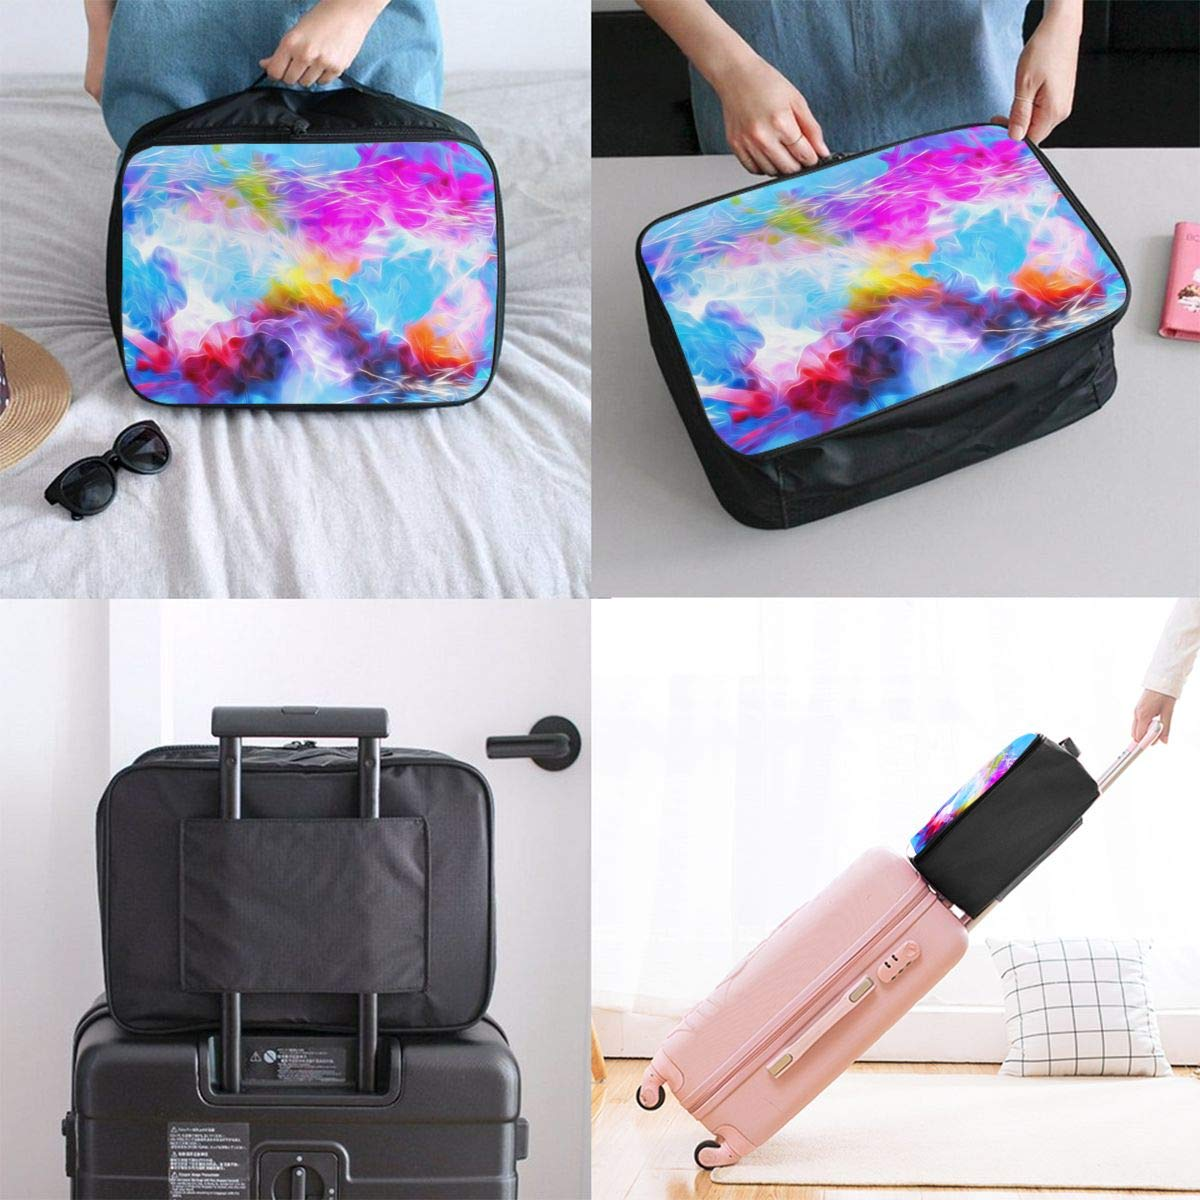 Watercolor Art Paint Splash Travel Lightweight Waterproof Foldable Storage Carry Luggage Large Capacity Portable Luggage Bag Duffel Bag